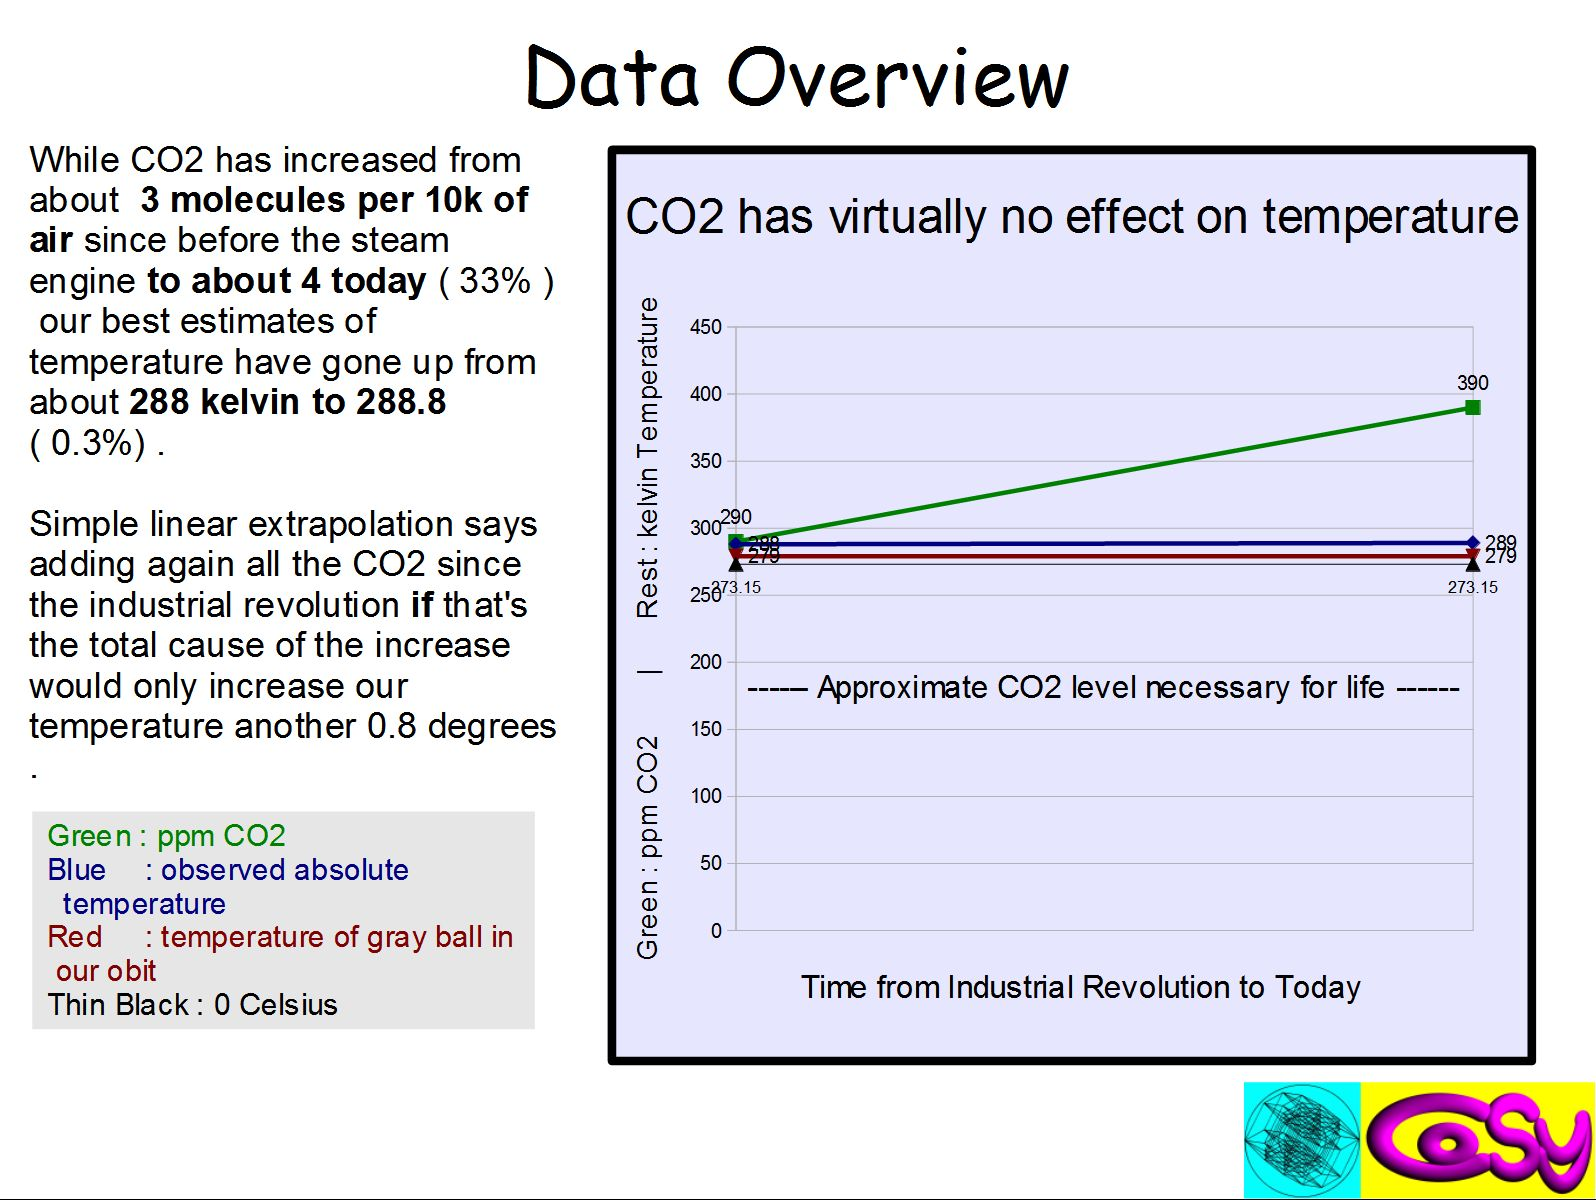 How Climate Feedback Is Fubar Watts Up With That Electrocircuitsblogspotcom High Temperature Indicator Circuit Heres My Graph Making The Point I Think Jpp A True 0 Based Shows In 03 Variation Weve Apparently Experienced There Isnt Even